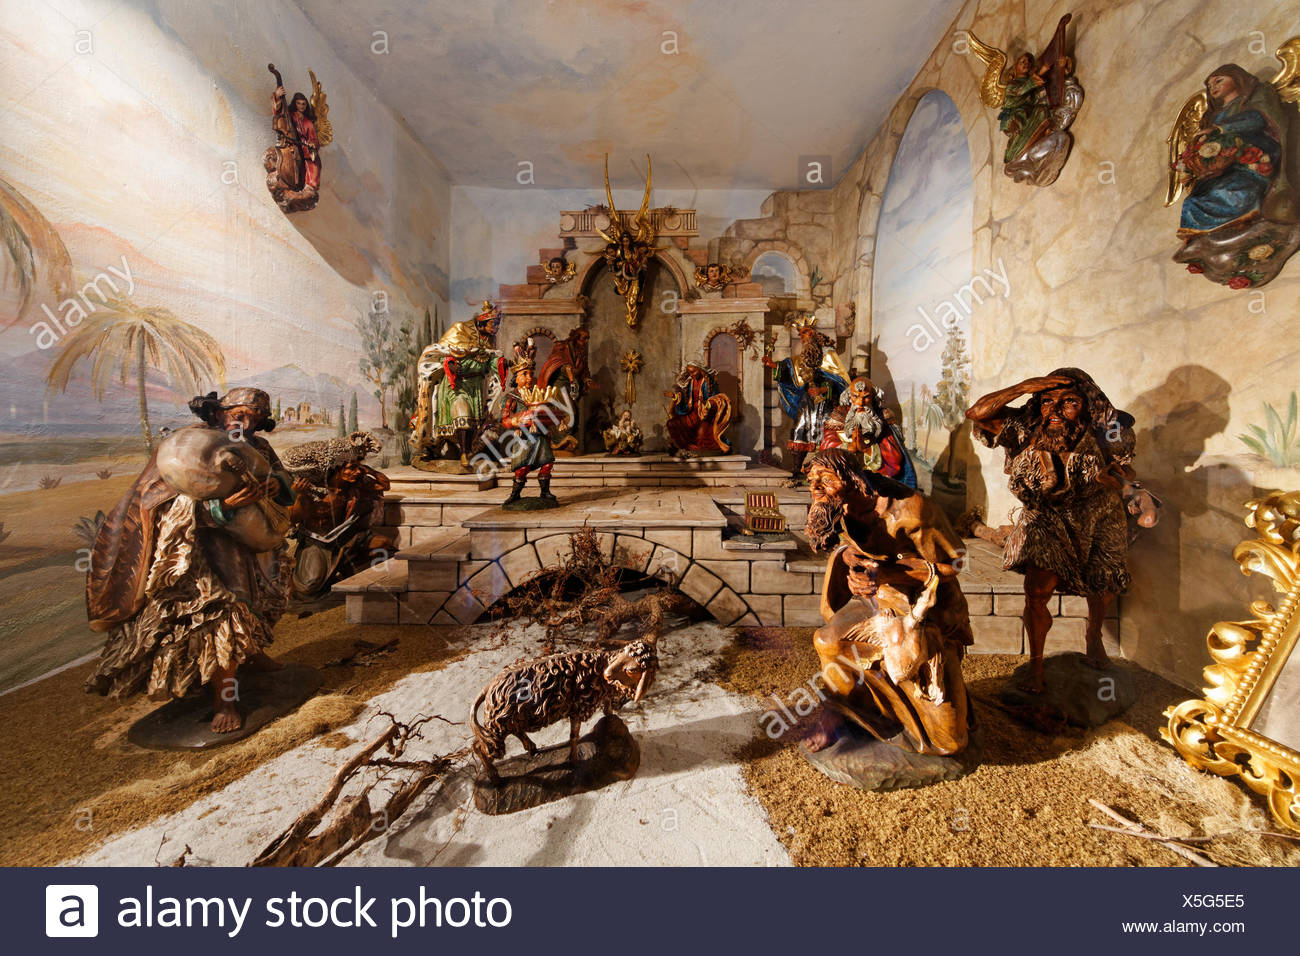 Crib made by Franz Binder in the Parish Church of St. Andreas, Steinbach on lake Attersee, Salzkammergut region, Upper Austria - Stock Image